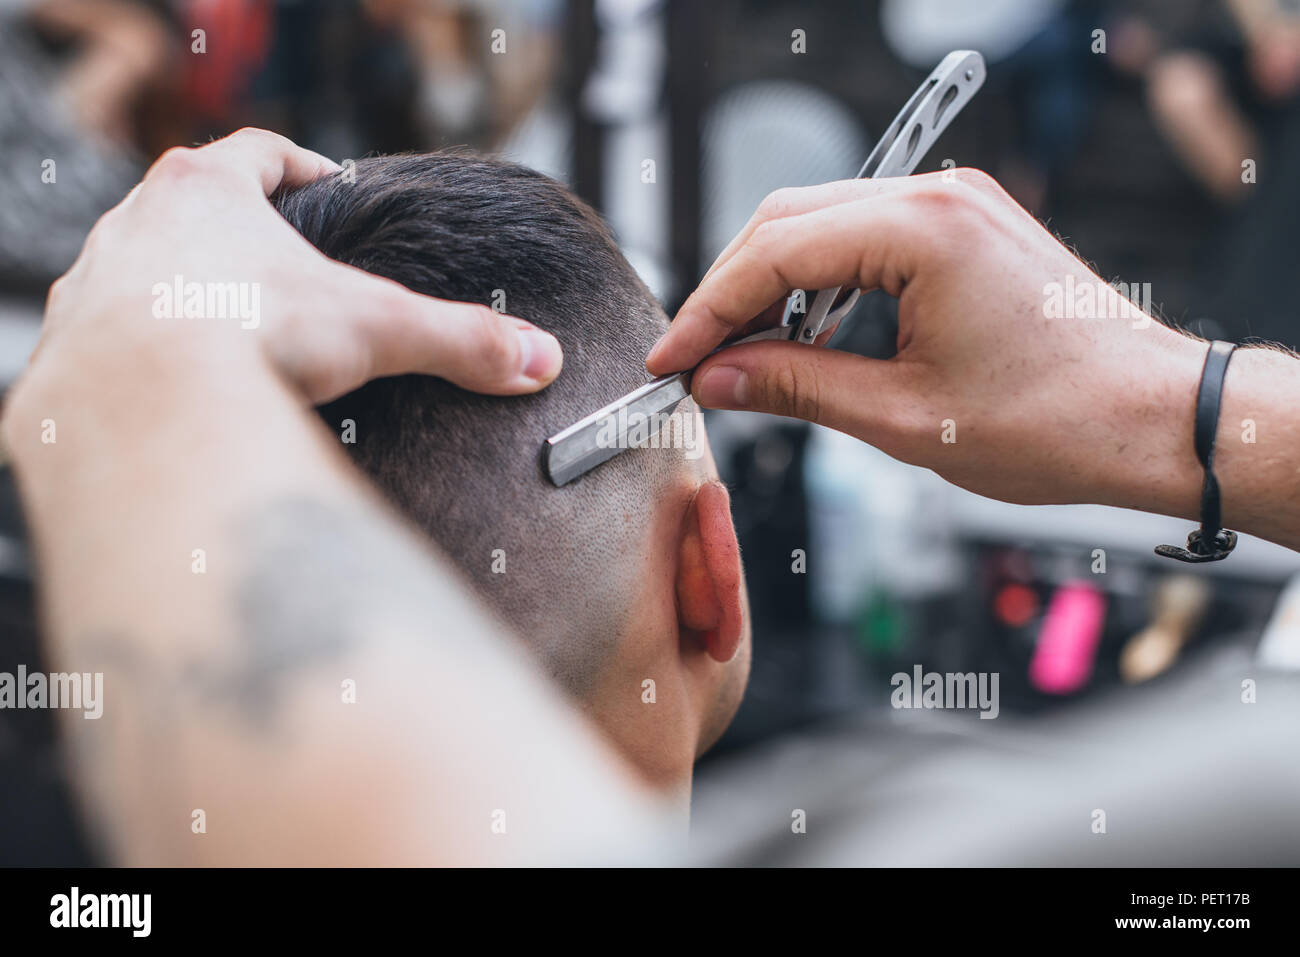 Barber Makes An Ideal Hairstyle Haircut Fade Hairdresser Performs